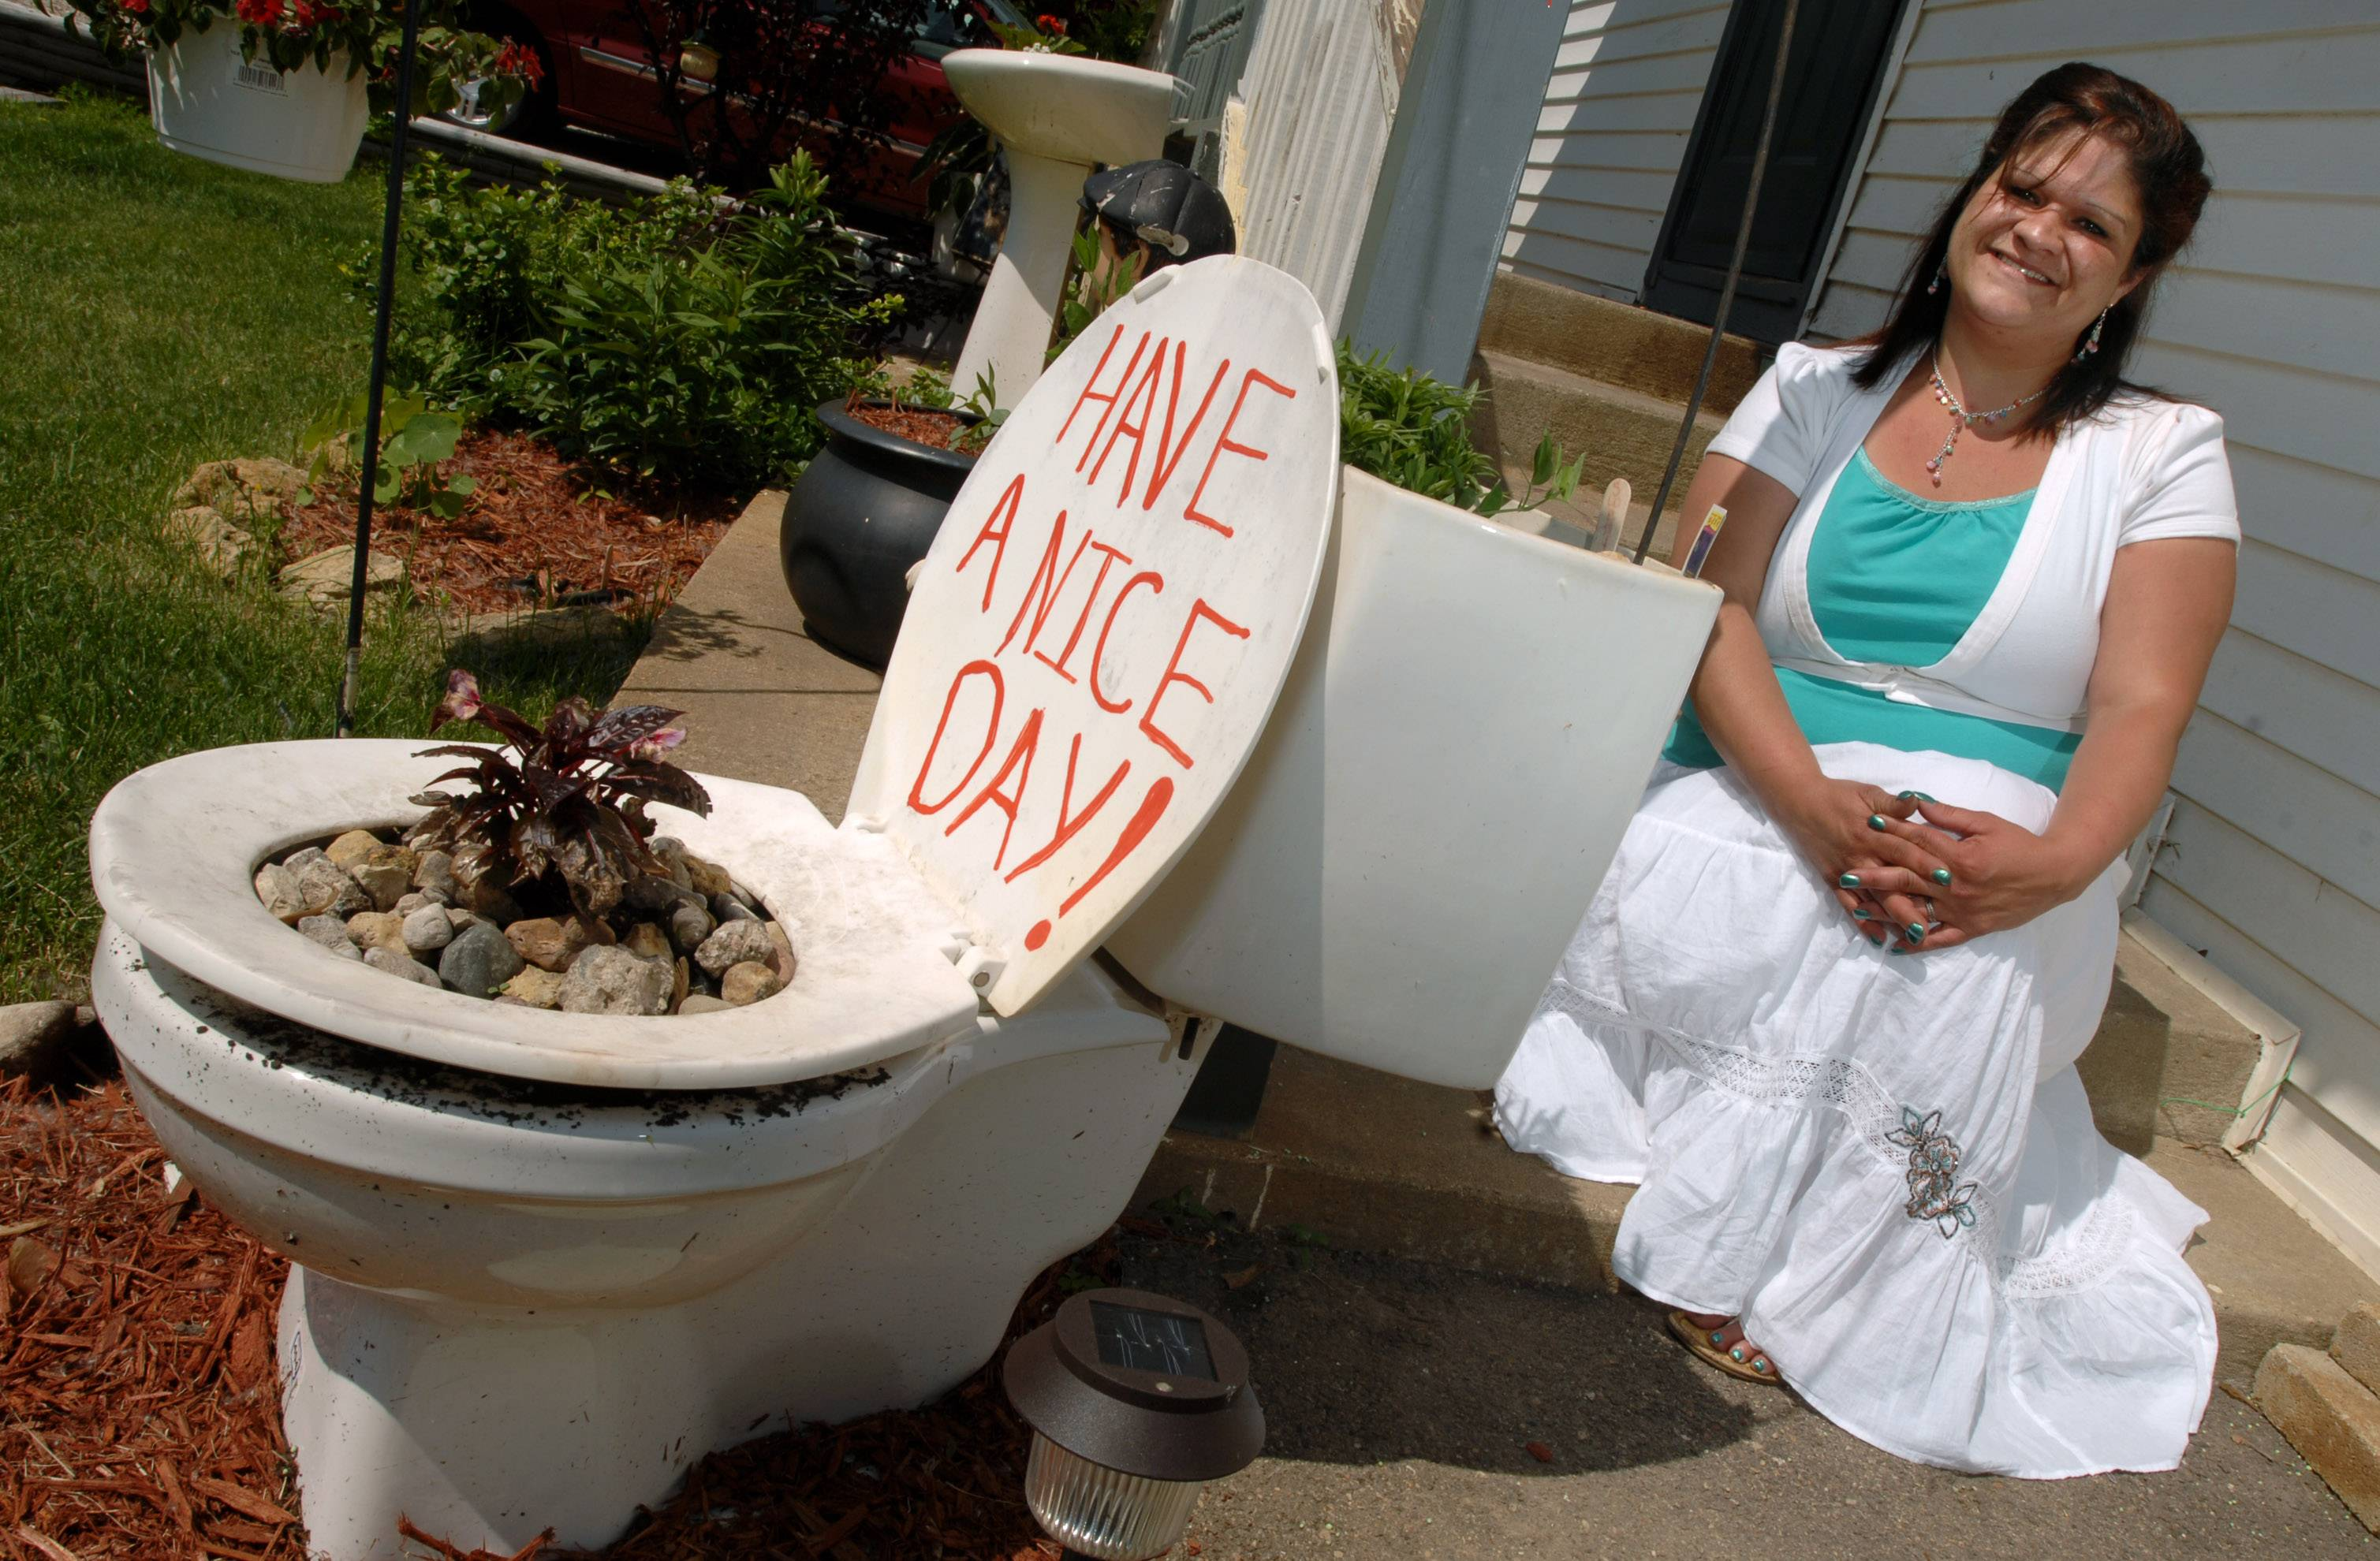 Lakemoor resident Tina Asmus has won the right to use old toilets as planters in her front yard.